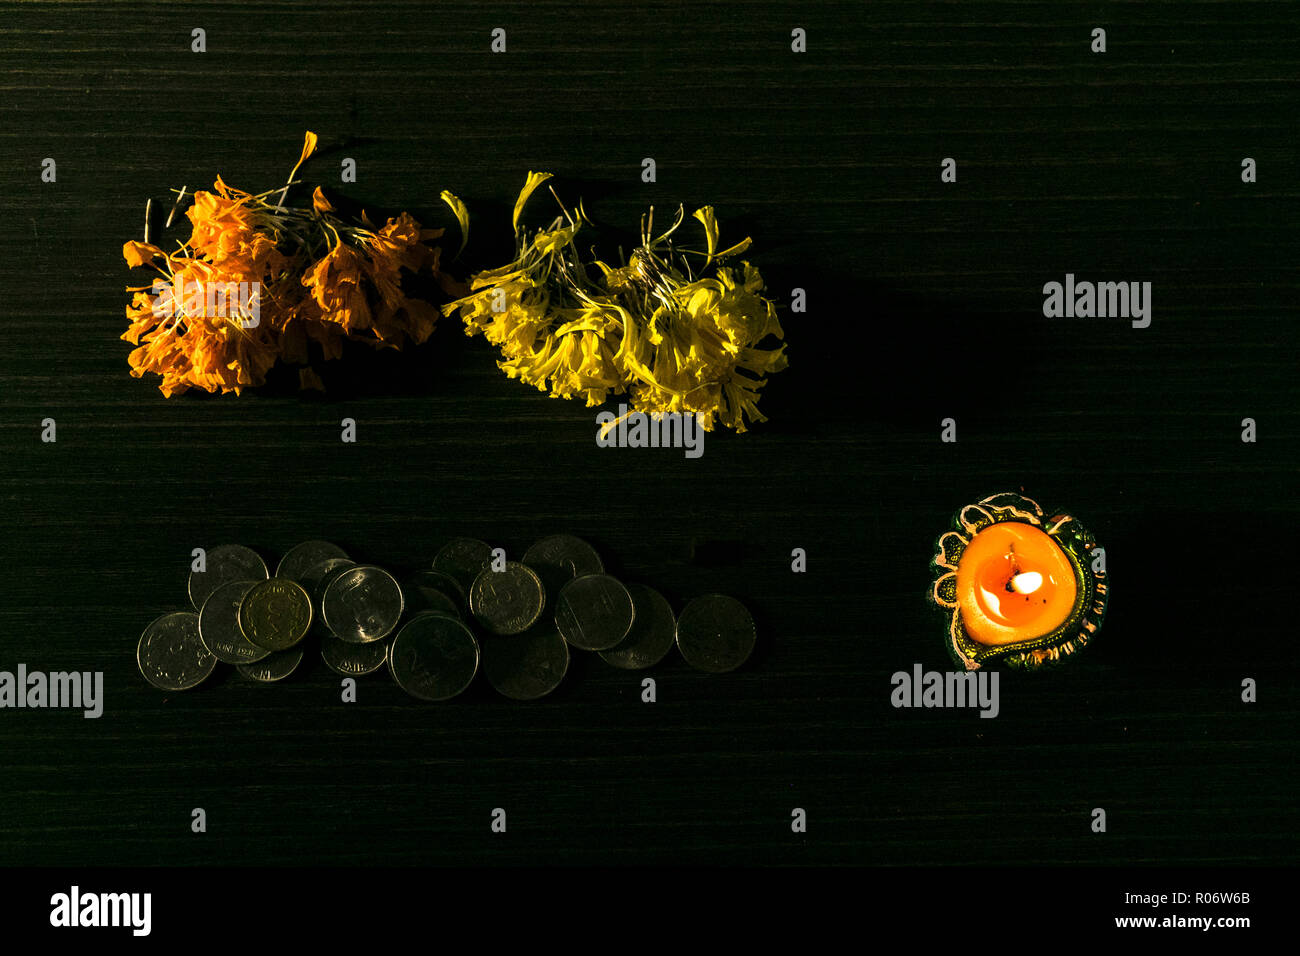 Lit diya and coins placed on black background to celebrate Diwali and Dhanteras Stock Photo